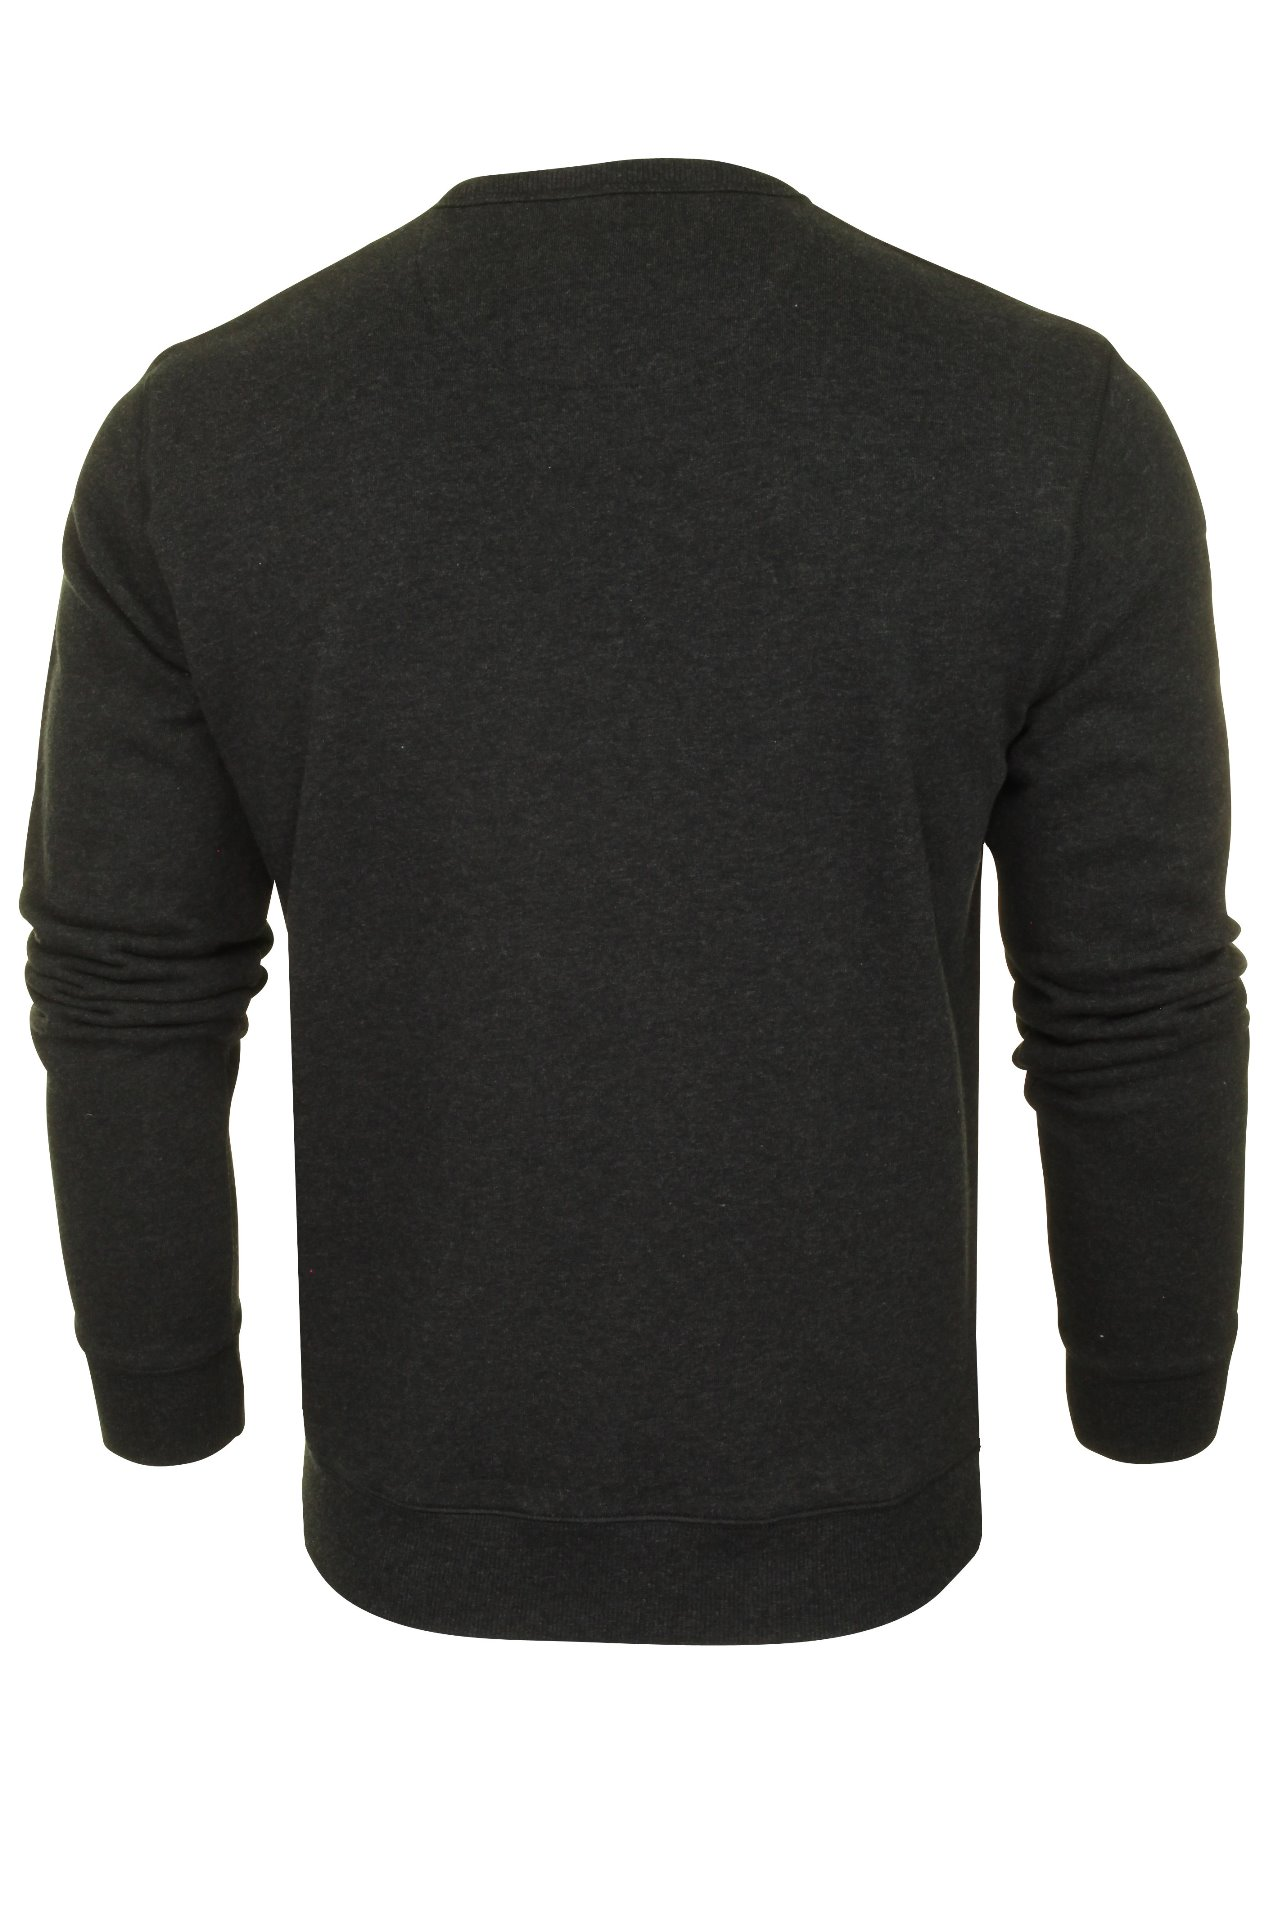 Farah-Mens-Slim-Fit-Crew-Neck-T-Shirt-039-Tim-Crew-039-Long-Sleeved thumbnail 5